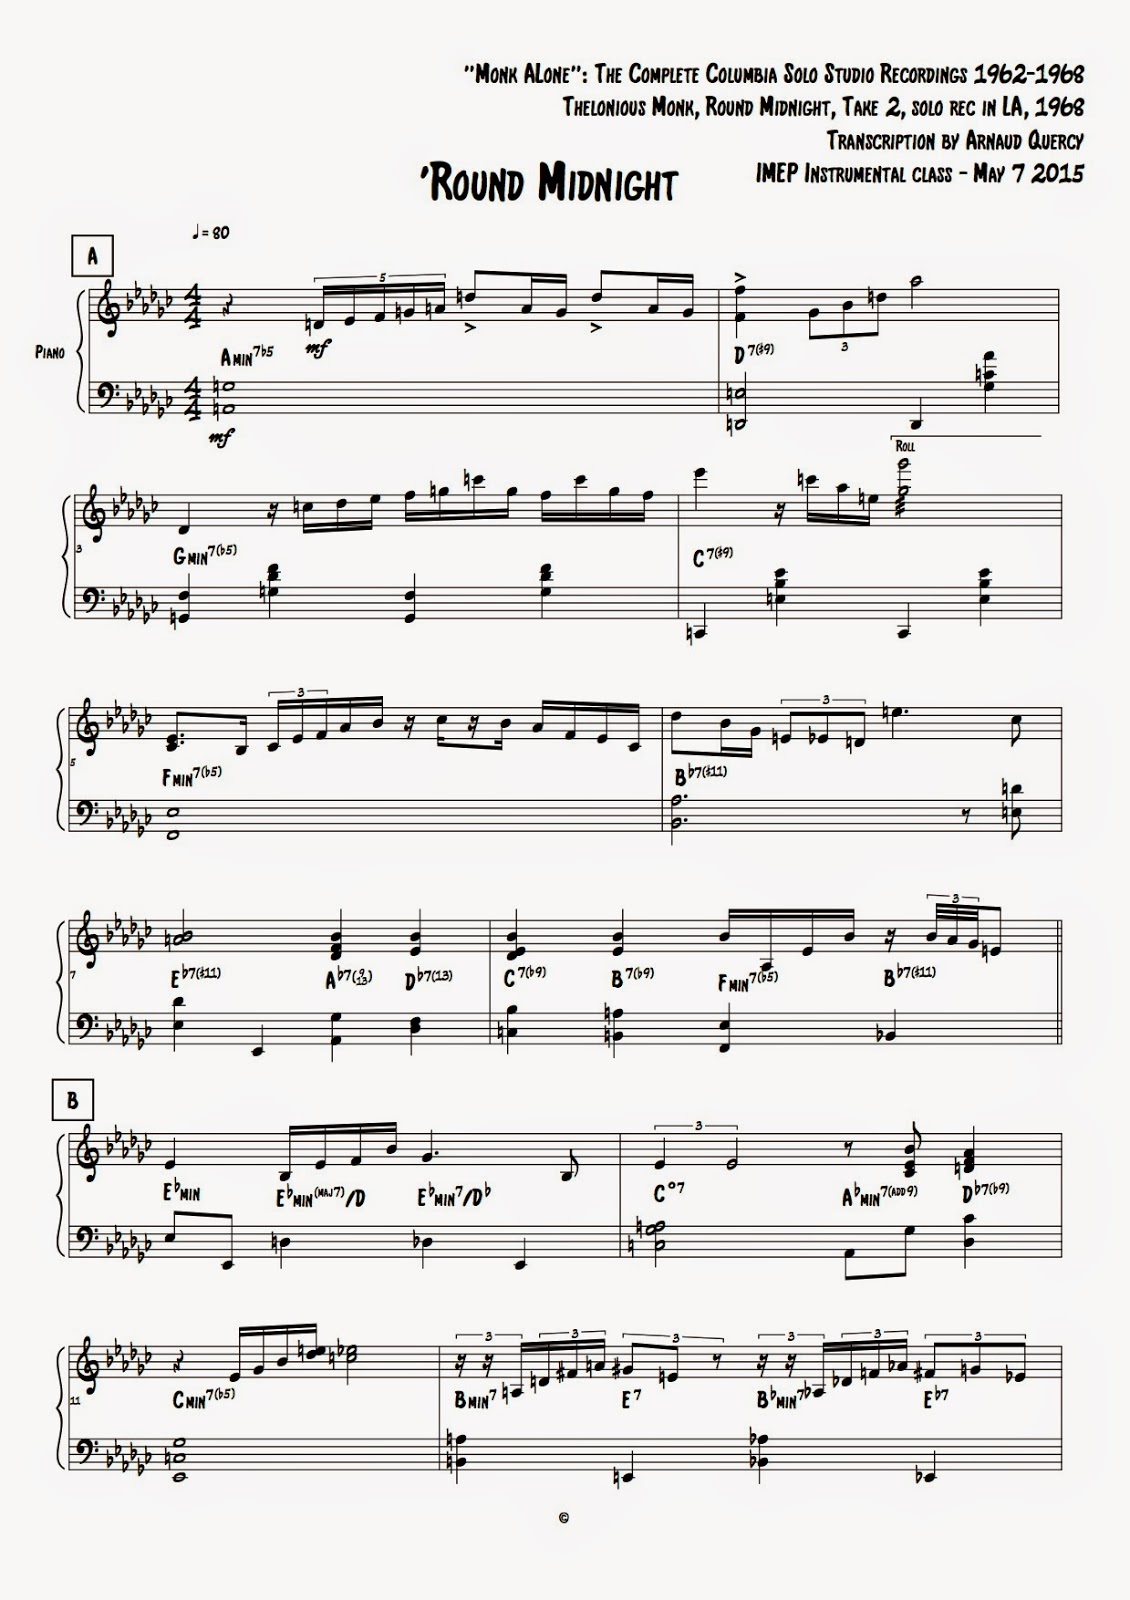 Round Midnight (Monk Alone)- Transcription By Arnaud Quercy - Month